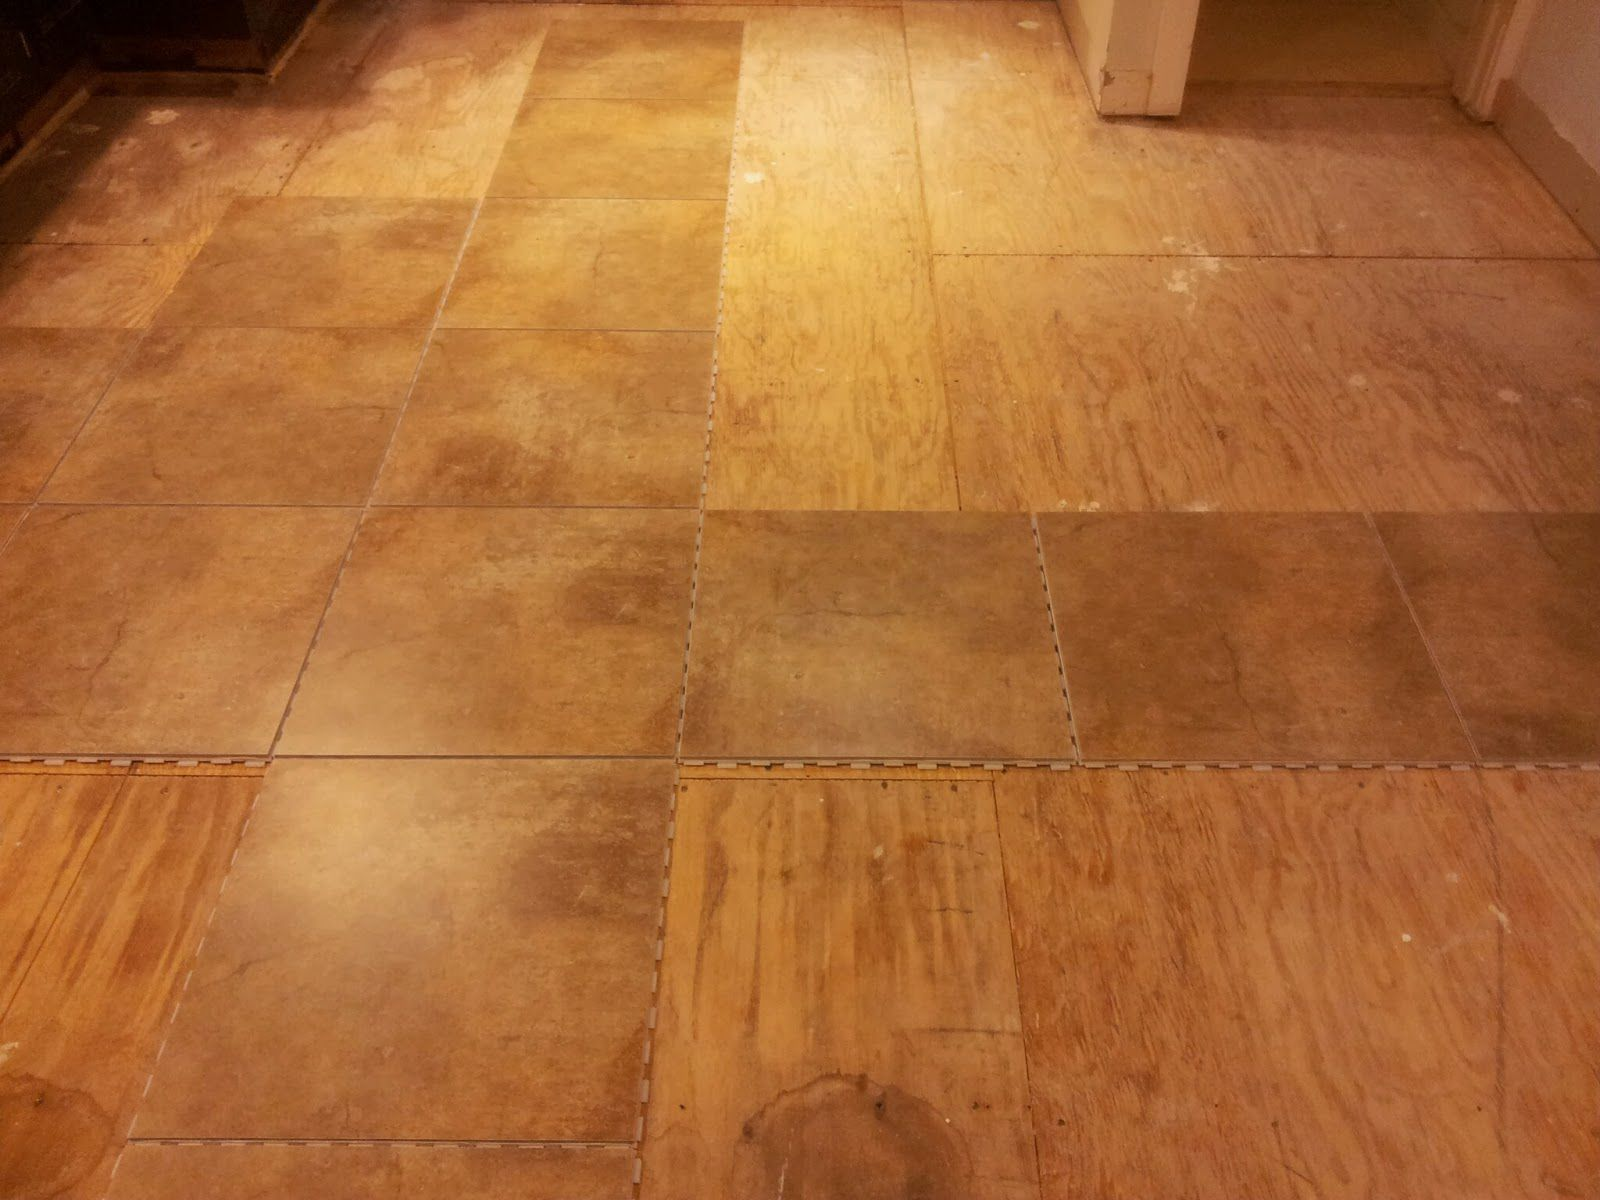 SnapStone Floors: An Easy Way To Lay Ceramic Tile